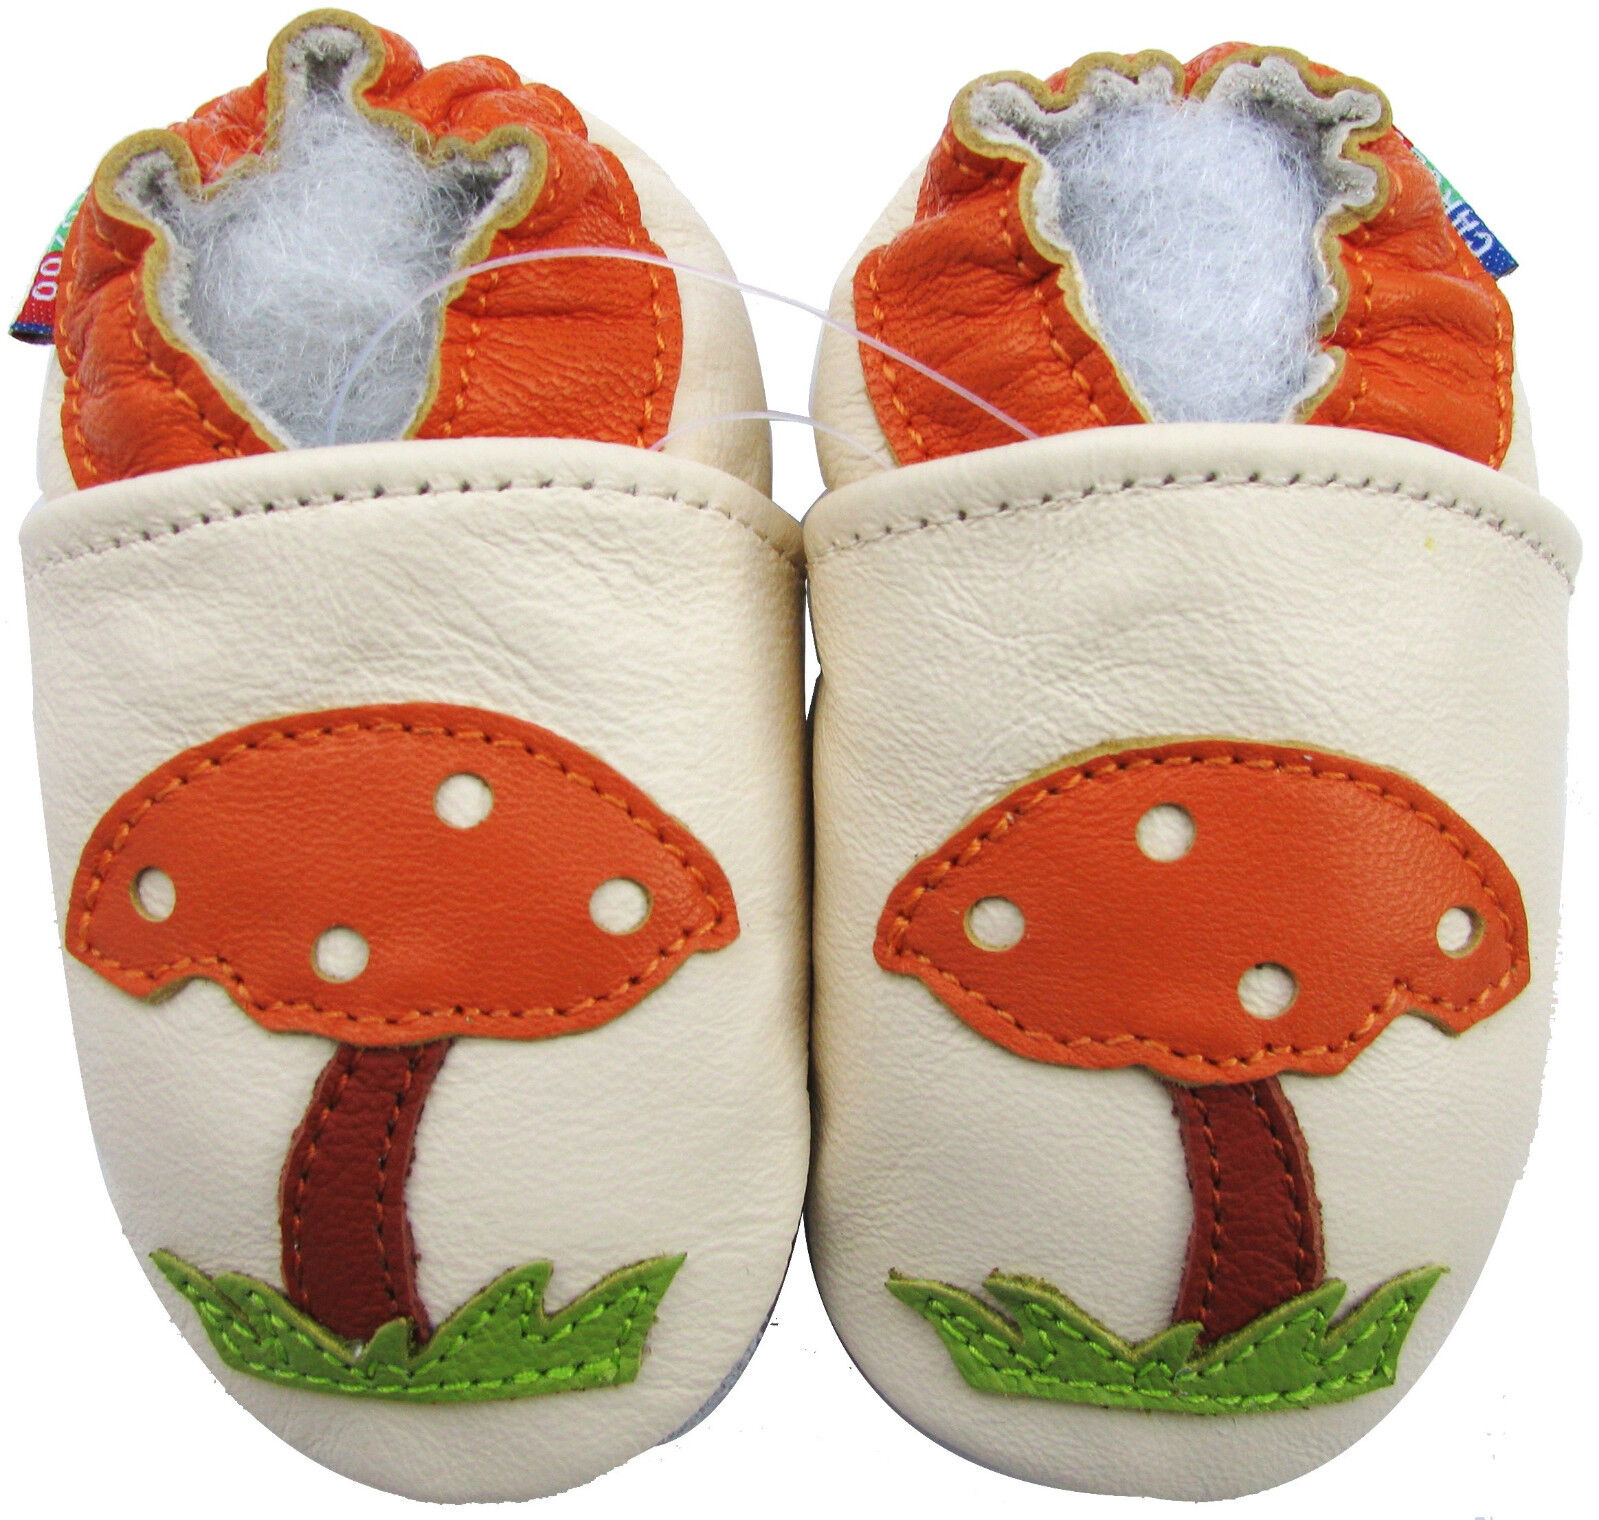 Carozoo Soft Sole Leather Baby Shoes Mushroom Cream 0 6m